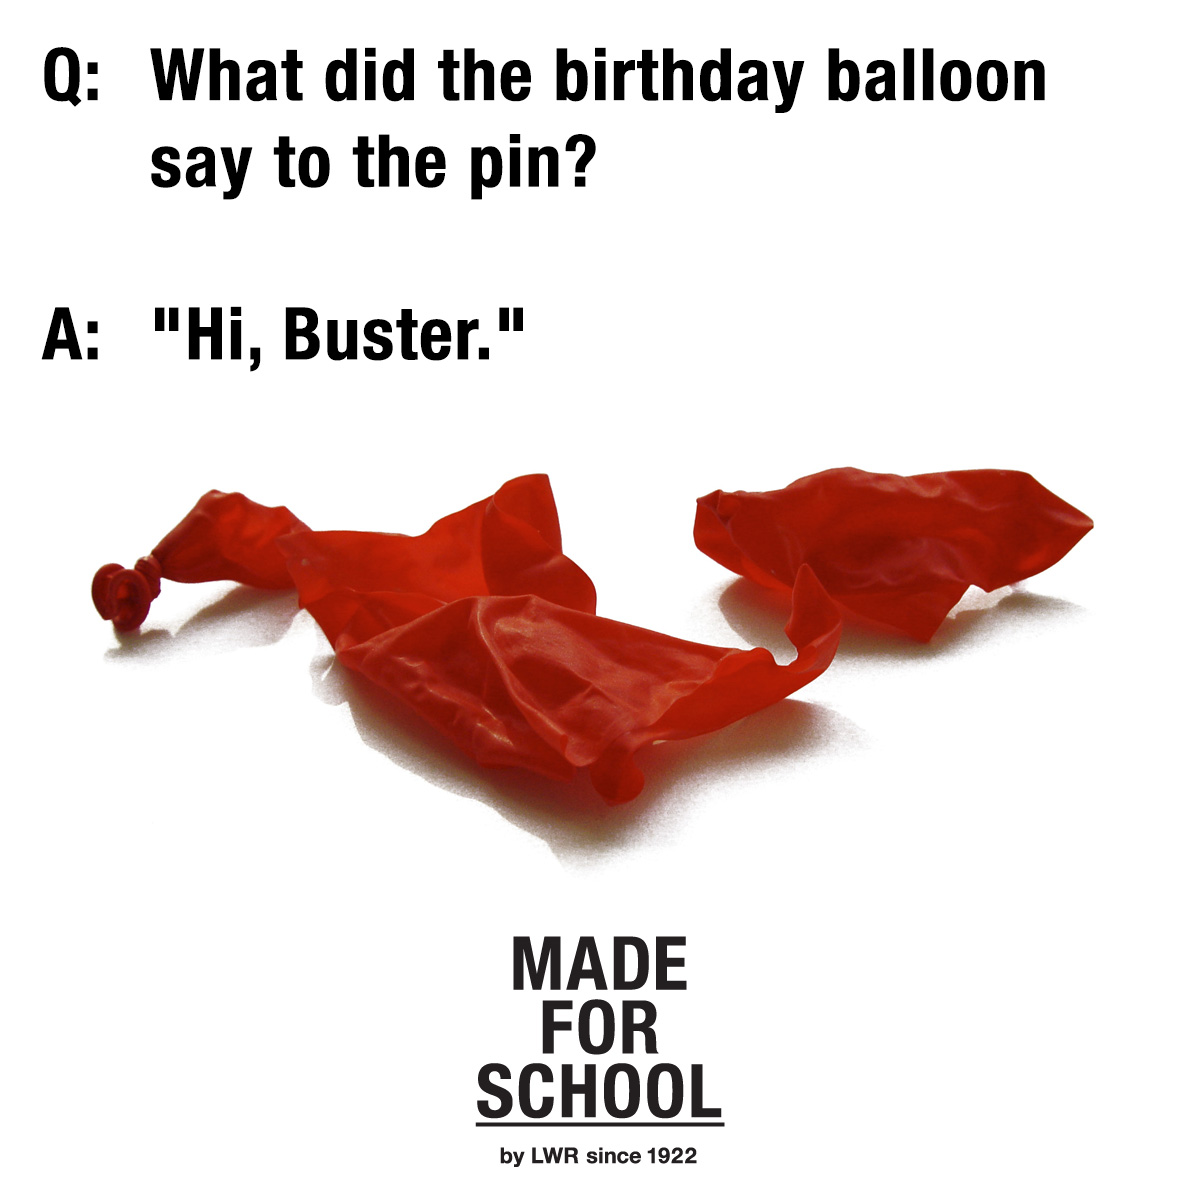 What did the Birthday Balloon say to the pin?